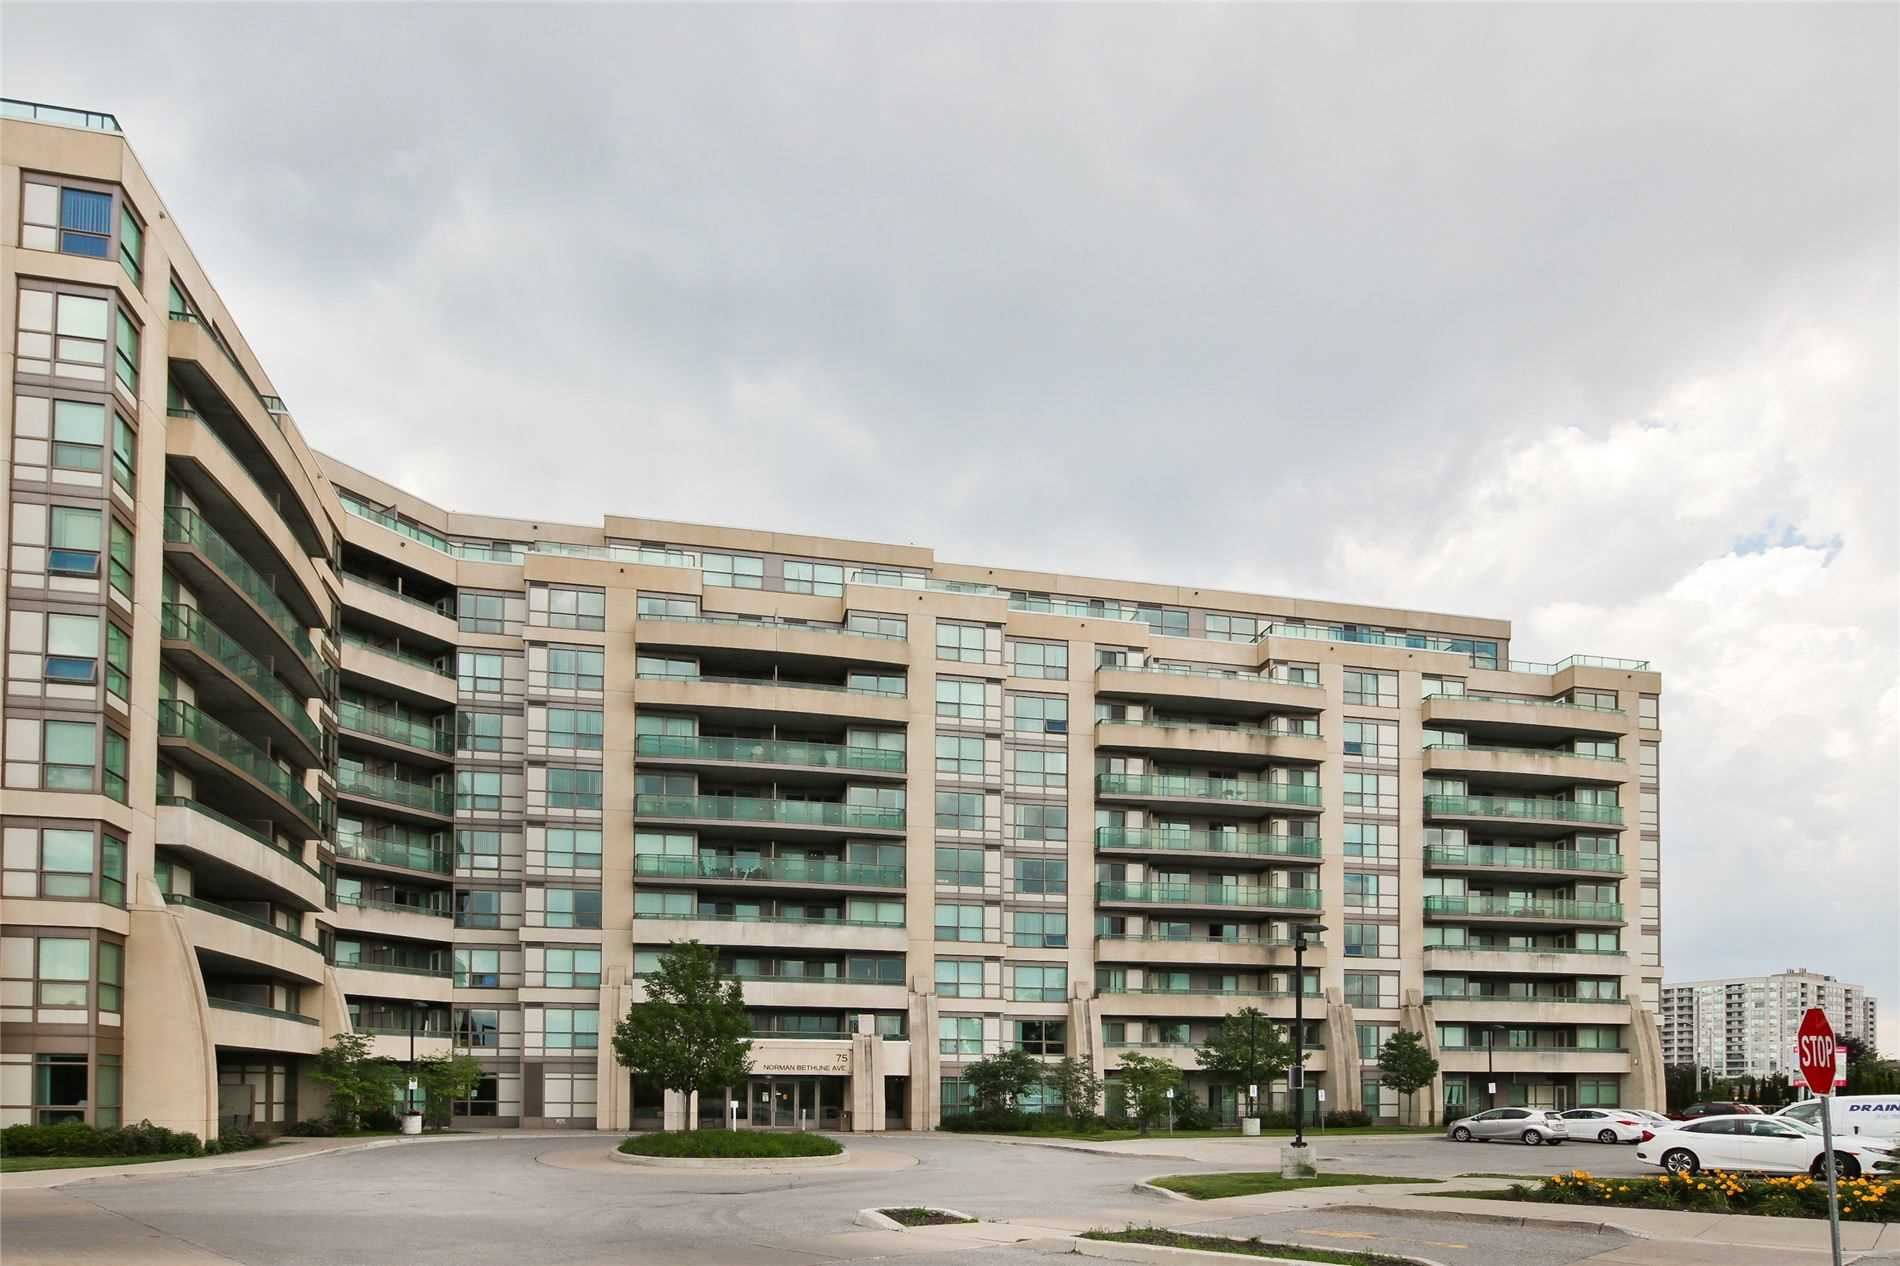 209 - 75 Norman Bethune Ave - Beaver Creek Business Park Condo Apt for sale, 2 Bedrooms (N5305489) - #2